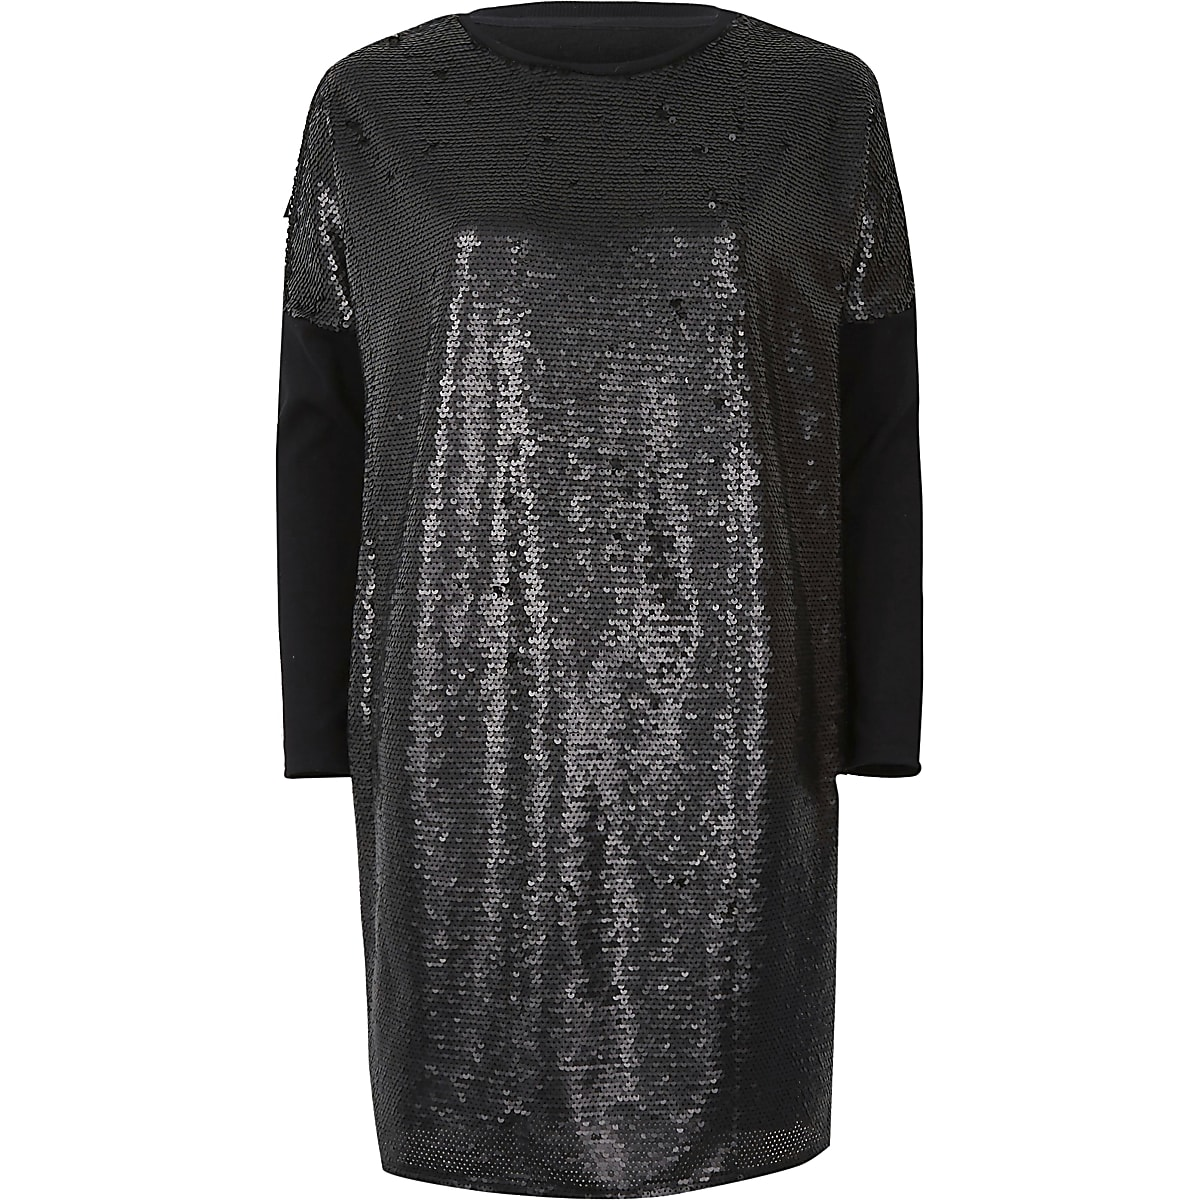 c24f61518e92 Black sequin oversized long sleeve T-shirt - T-Shirt Dresses - Dresses -  women